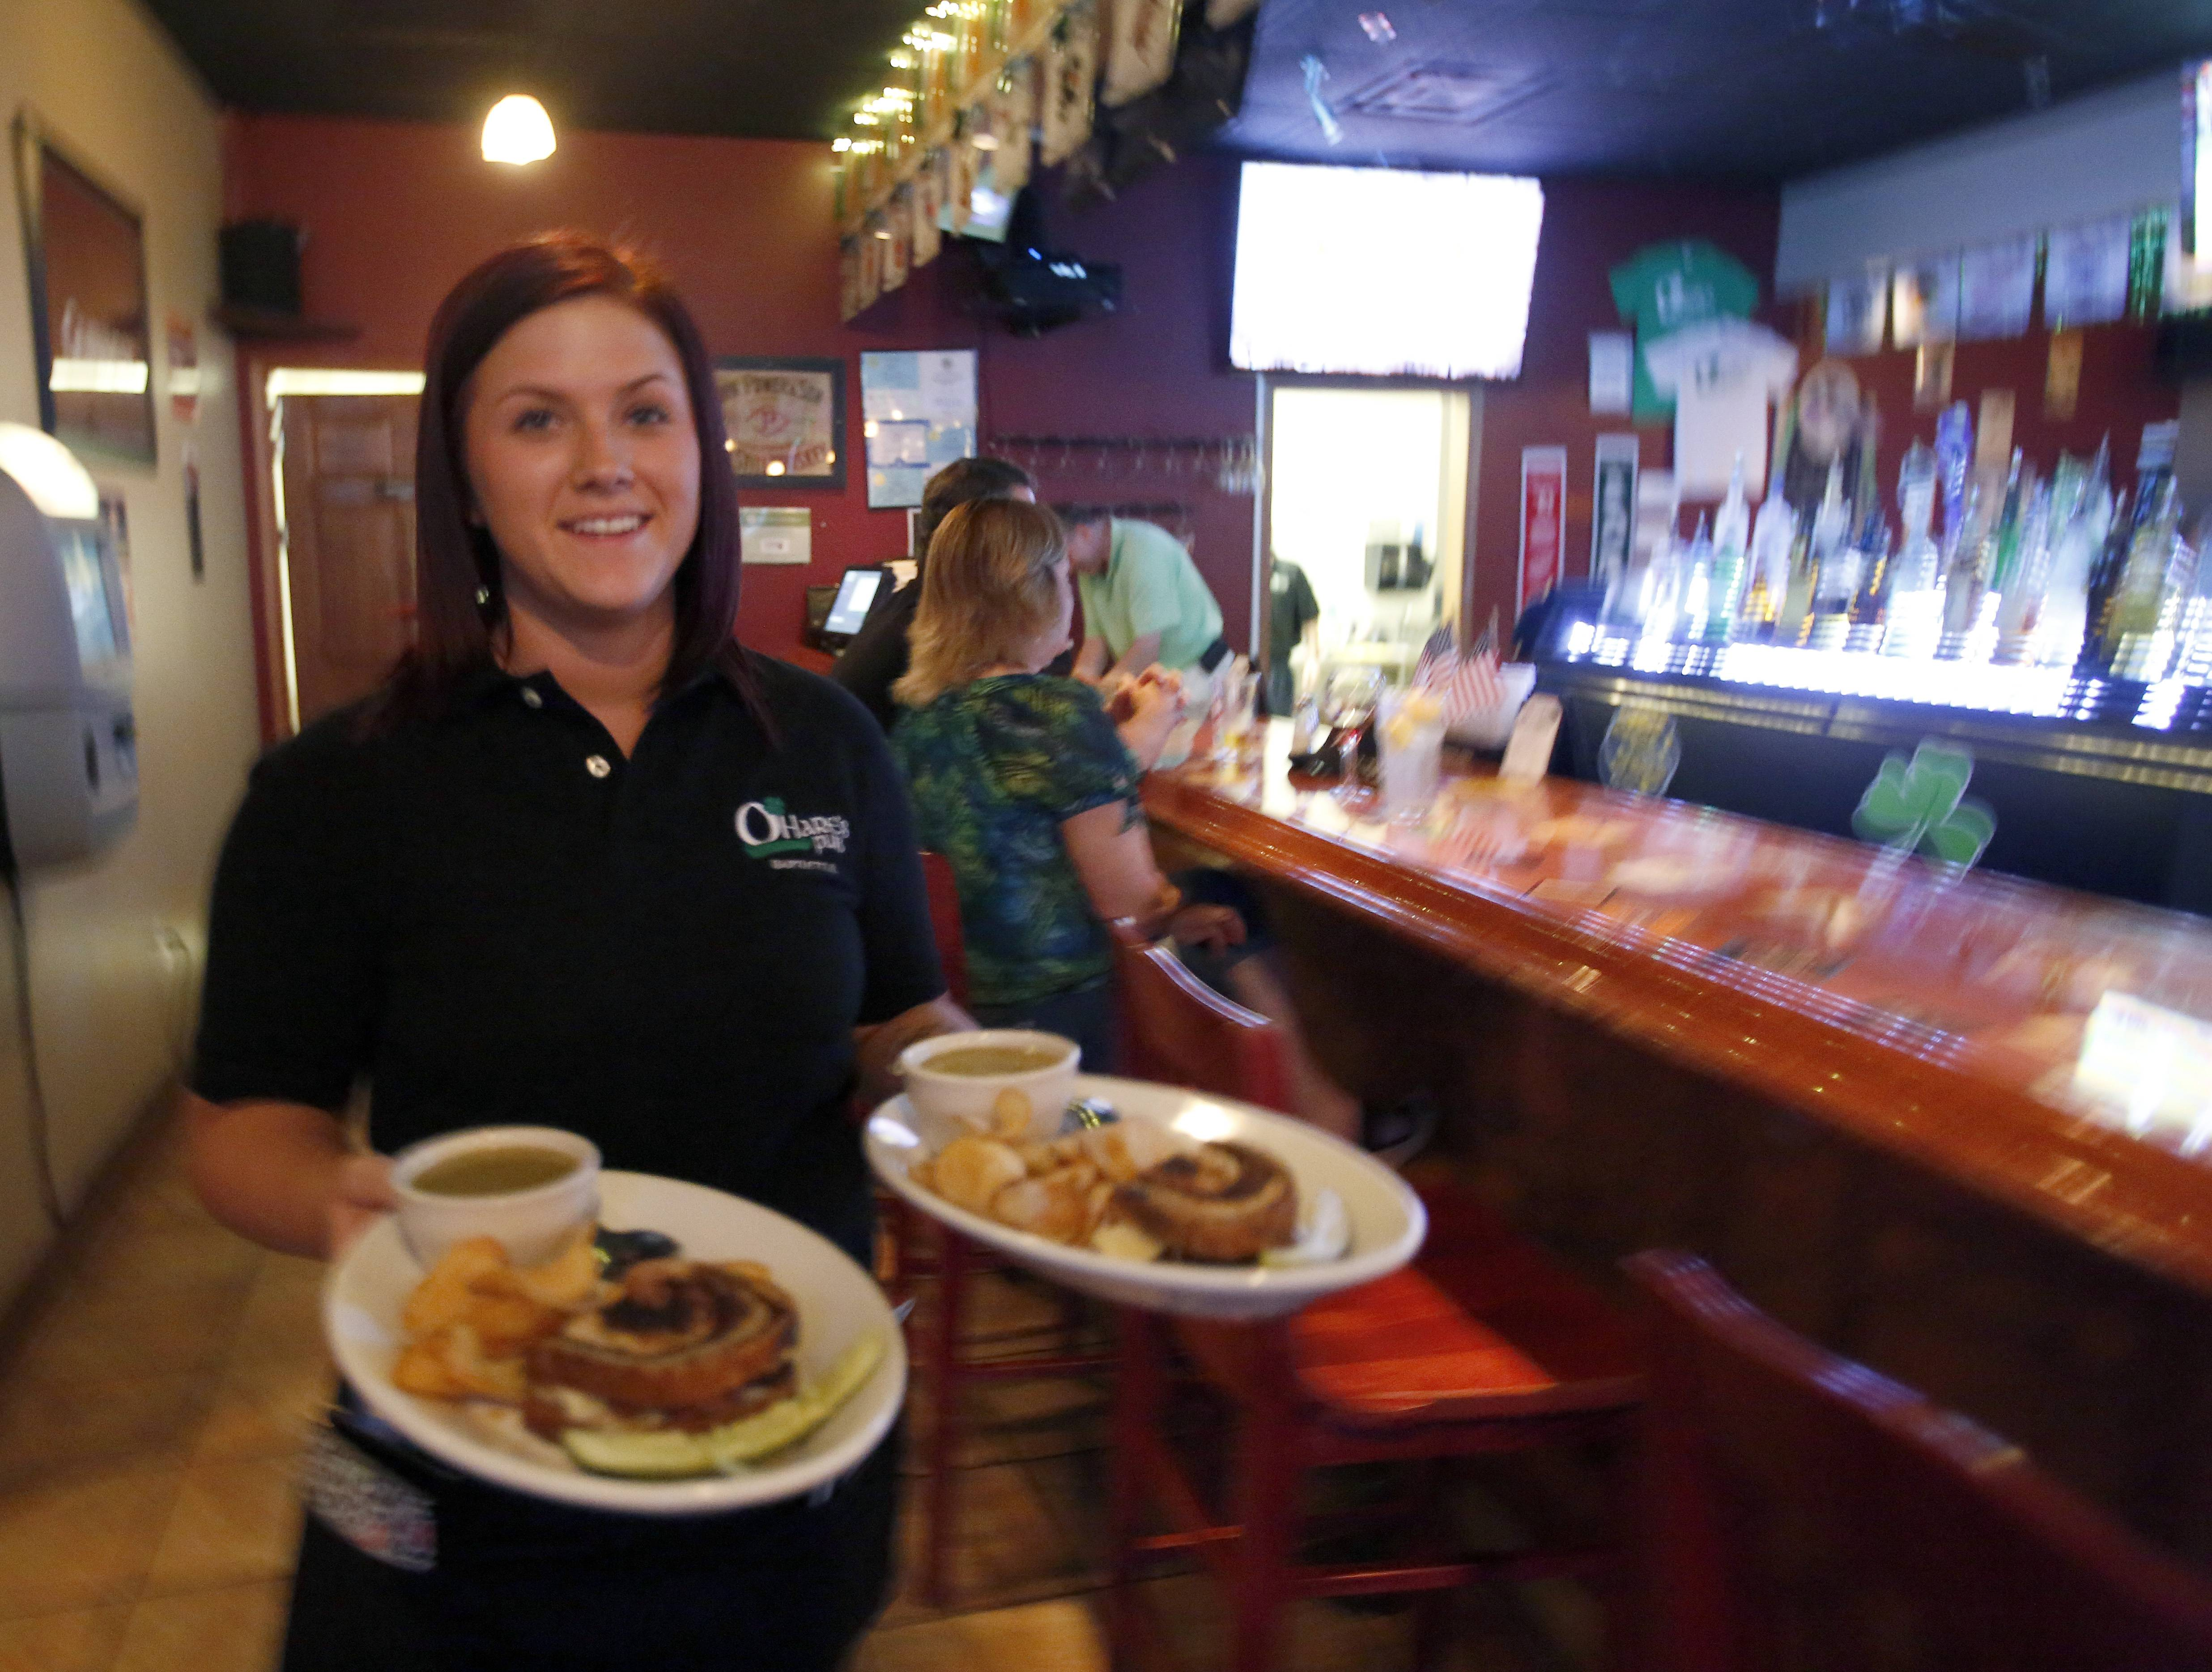 Server Amanda Taylor delivers dinner to patrons at O'Hare's Pub in Bartlett.